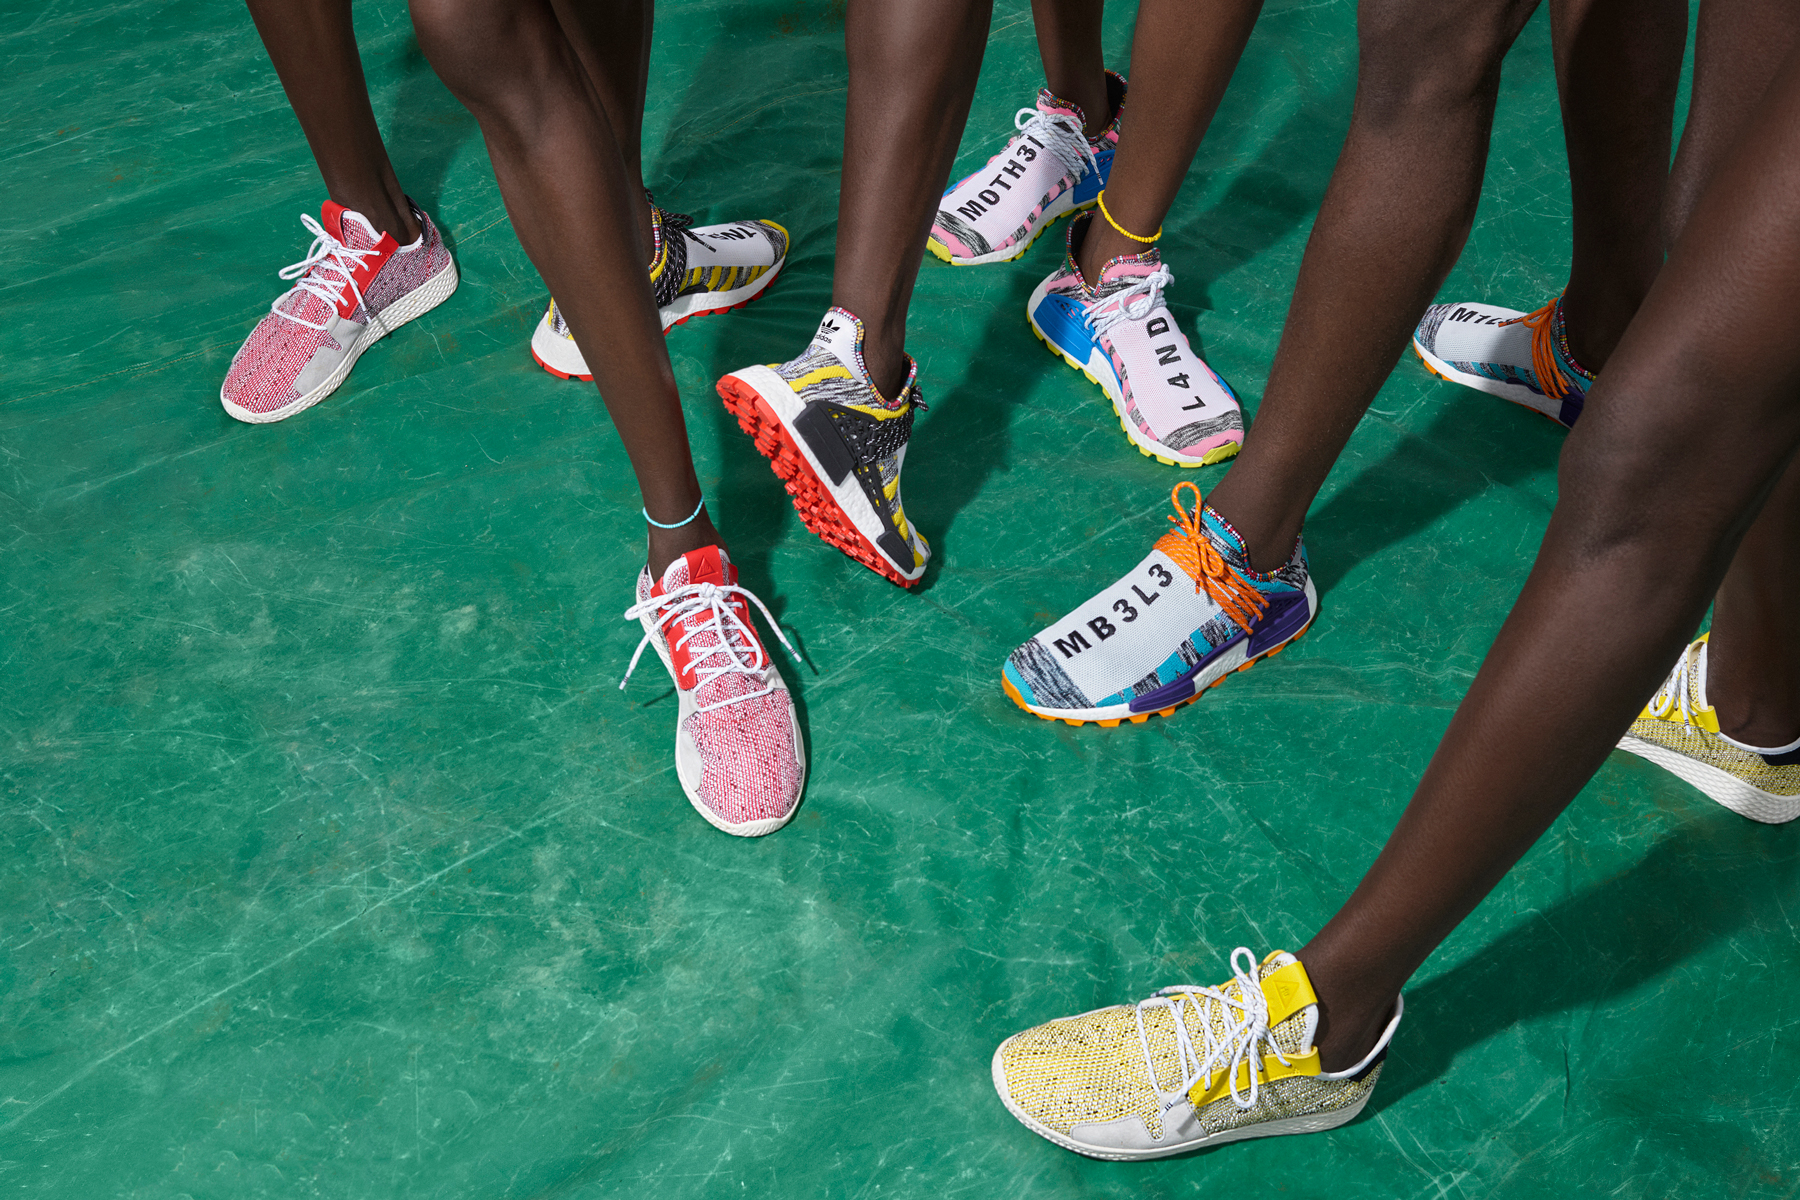 pharrell williams adidas solar hu collection august 2018 originals hu tennis v2 nmd footwear